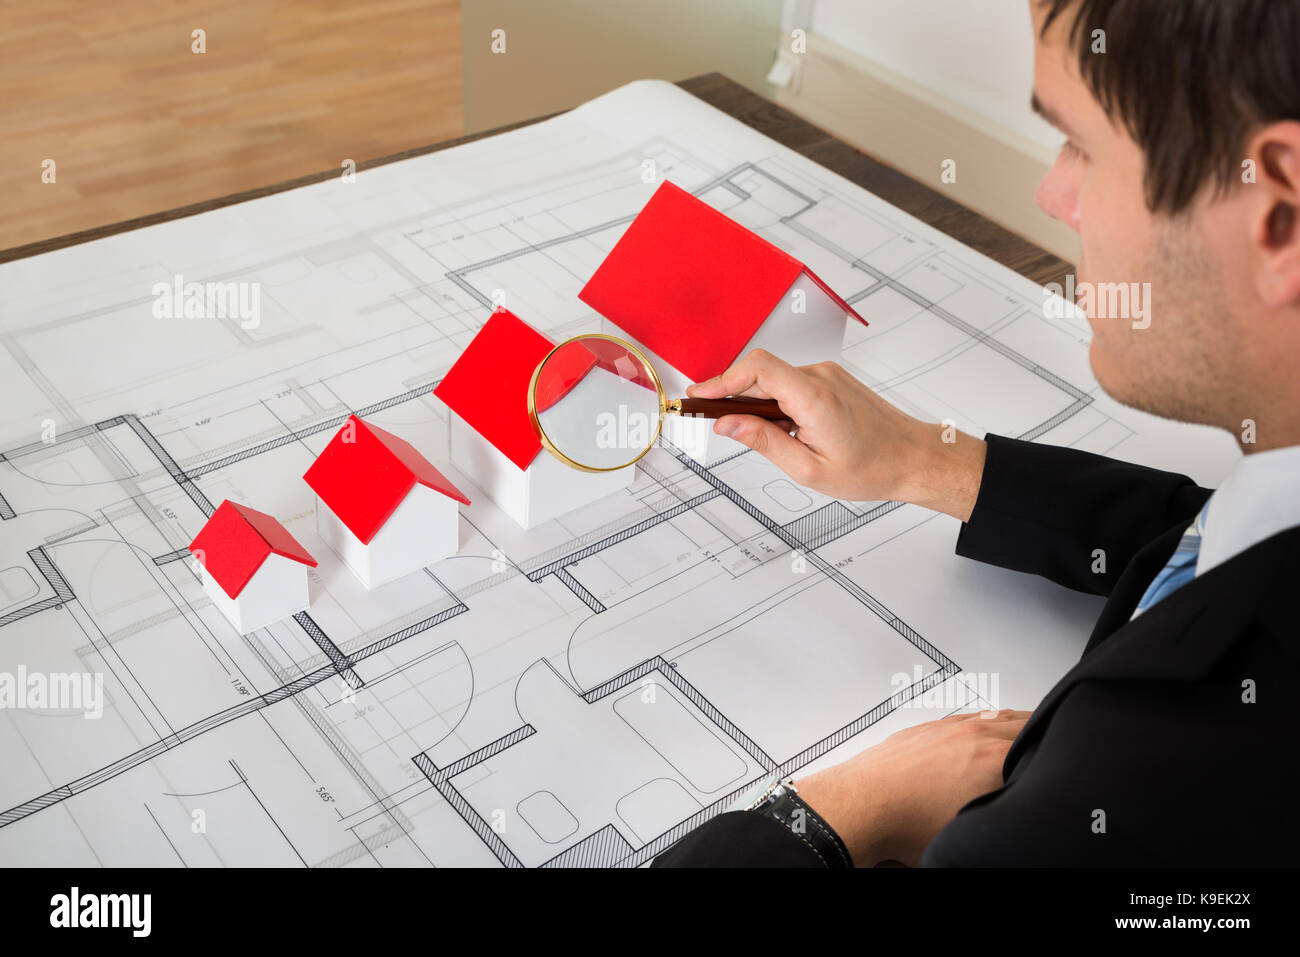 Male Architect Looking At House Models On Blueprint Through Magnifying Glass - Stock Image